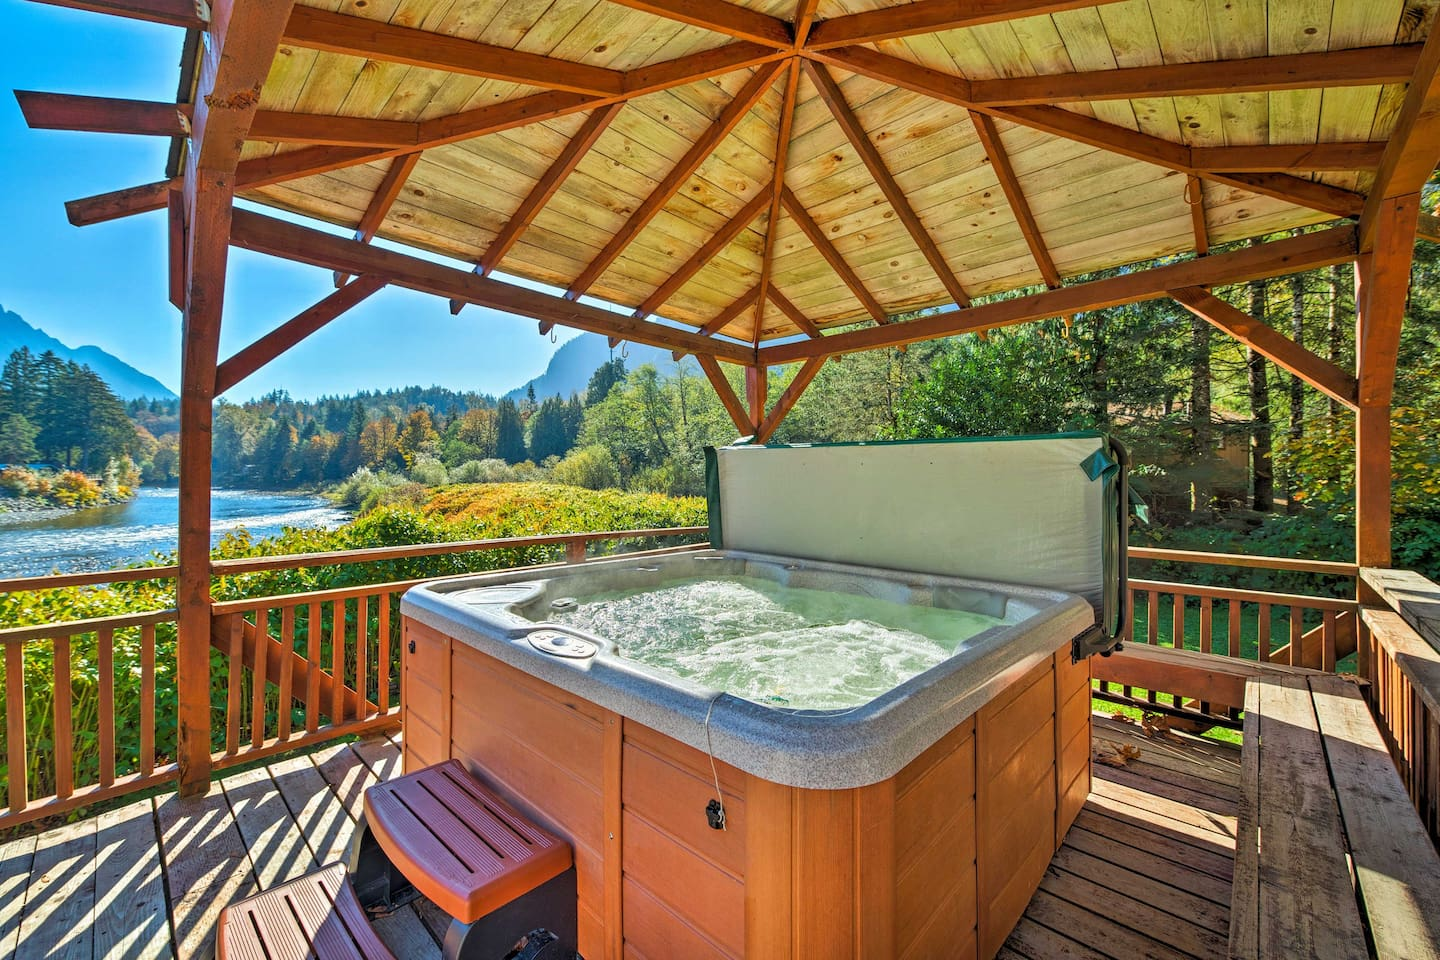 Treat yourself to a beautiful nature retreat at this vacation rental home.